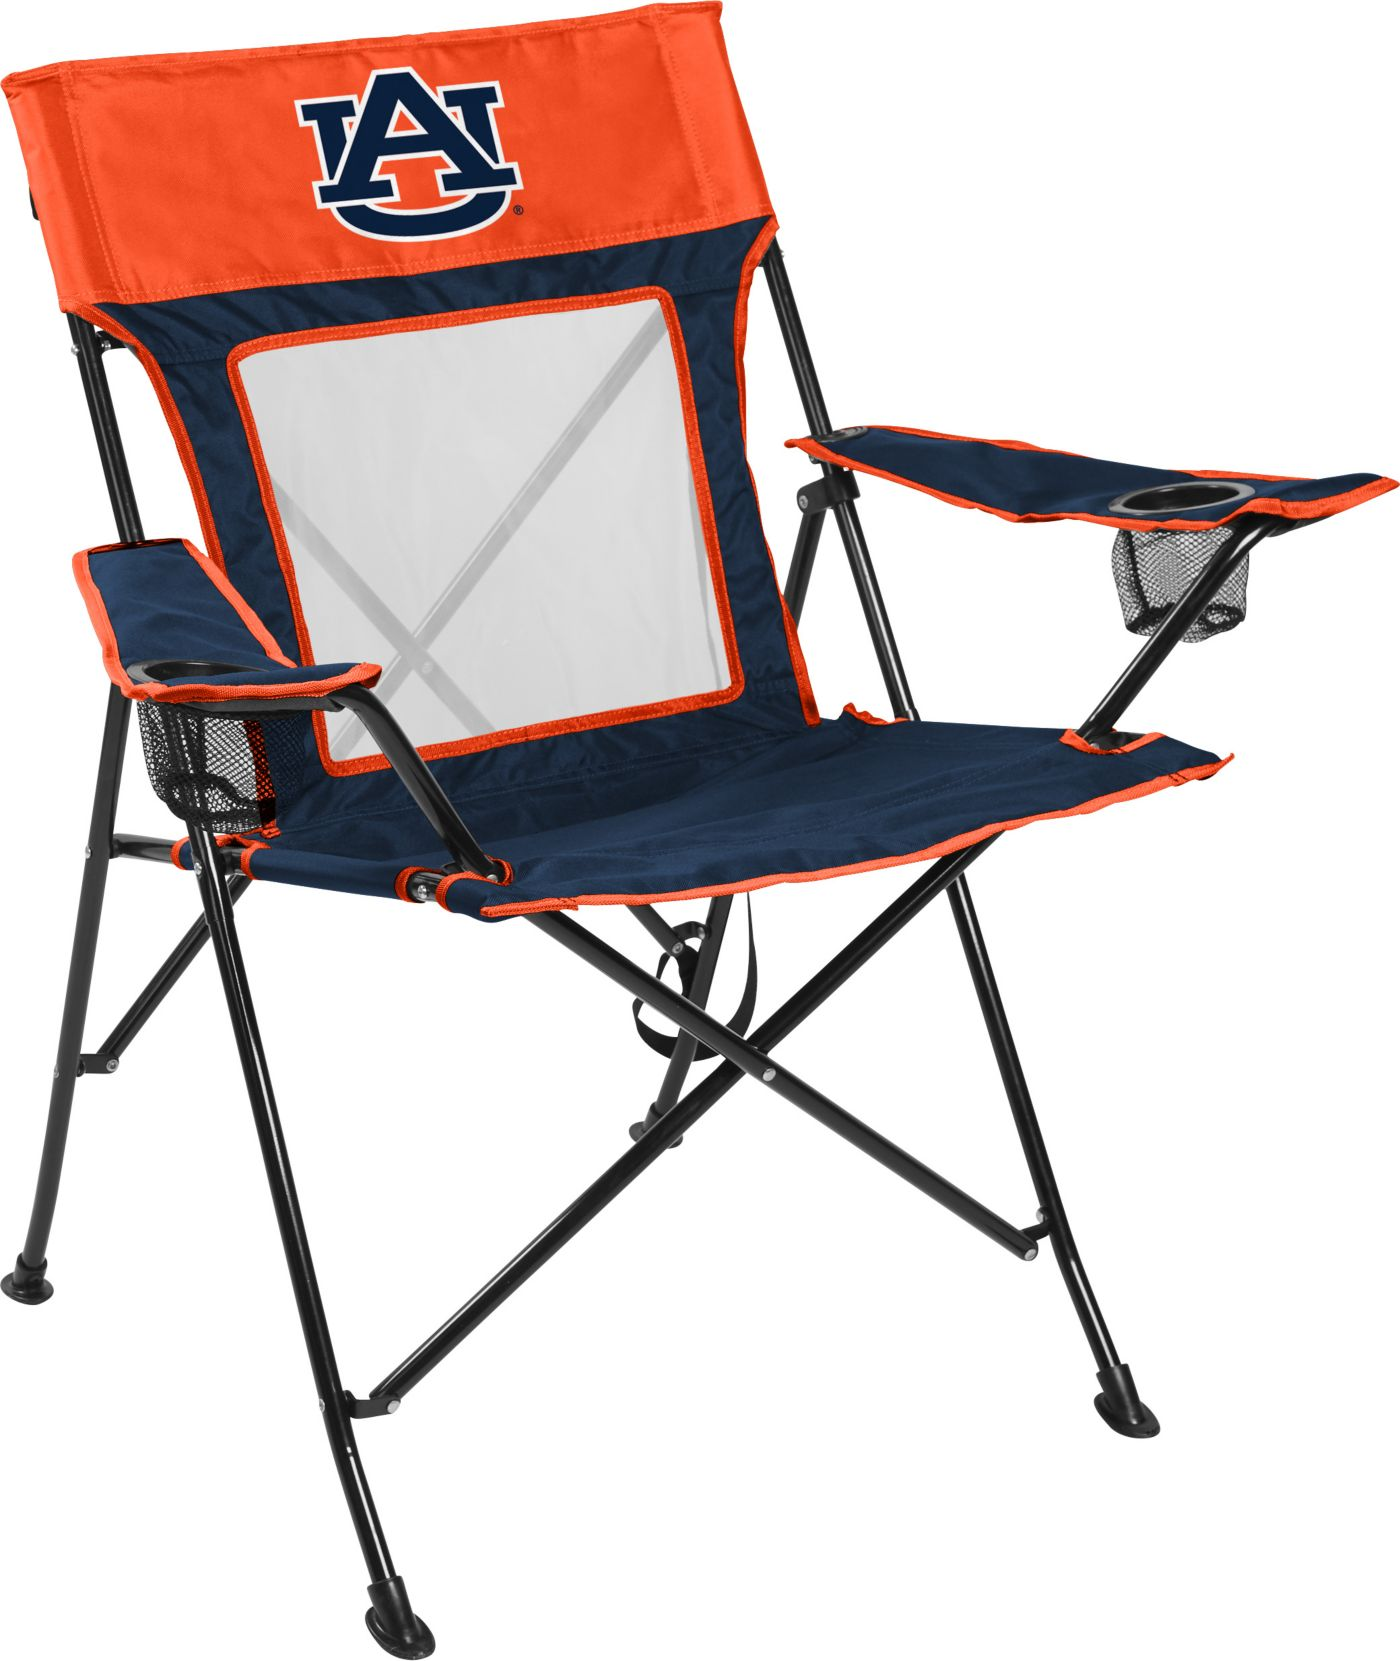 Rawlings Auburn Tigers Game Changer Chair